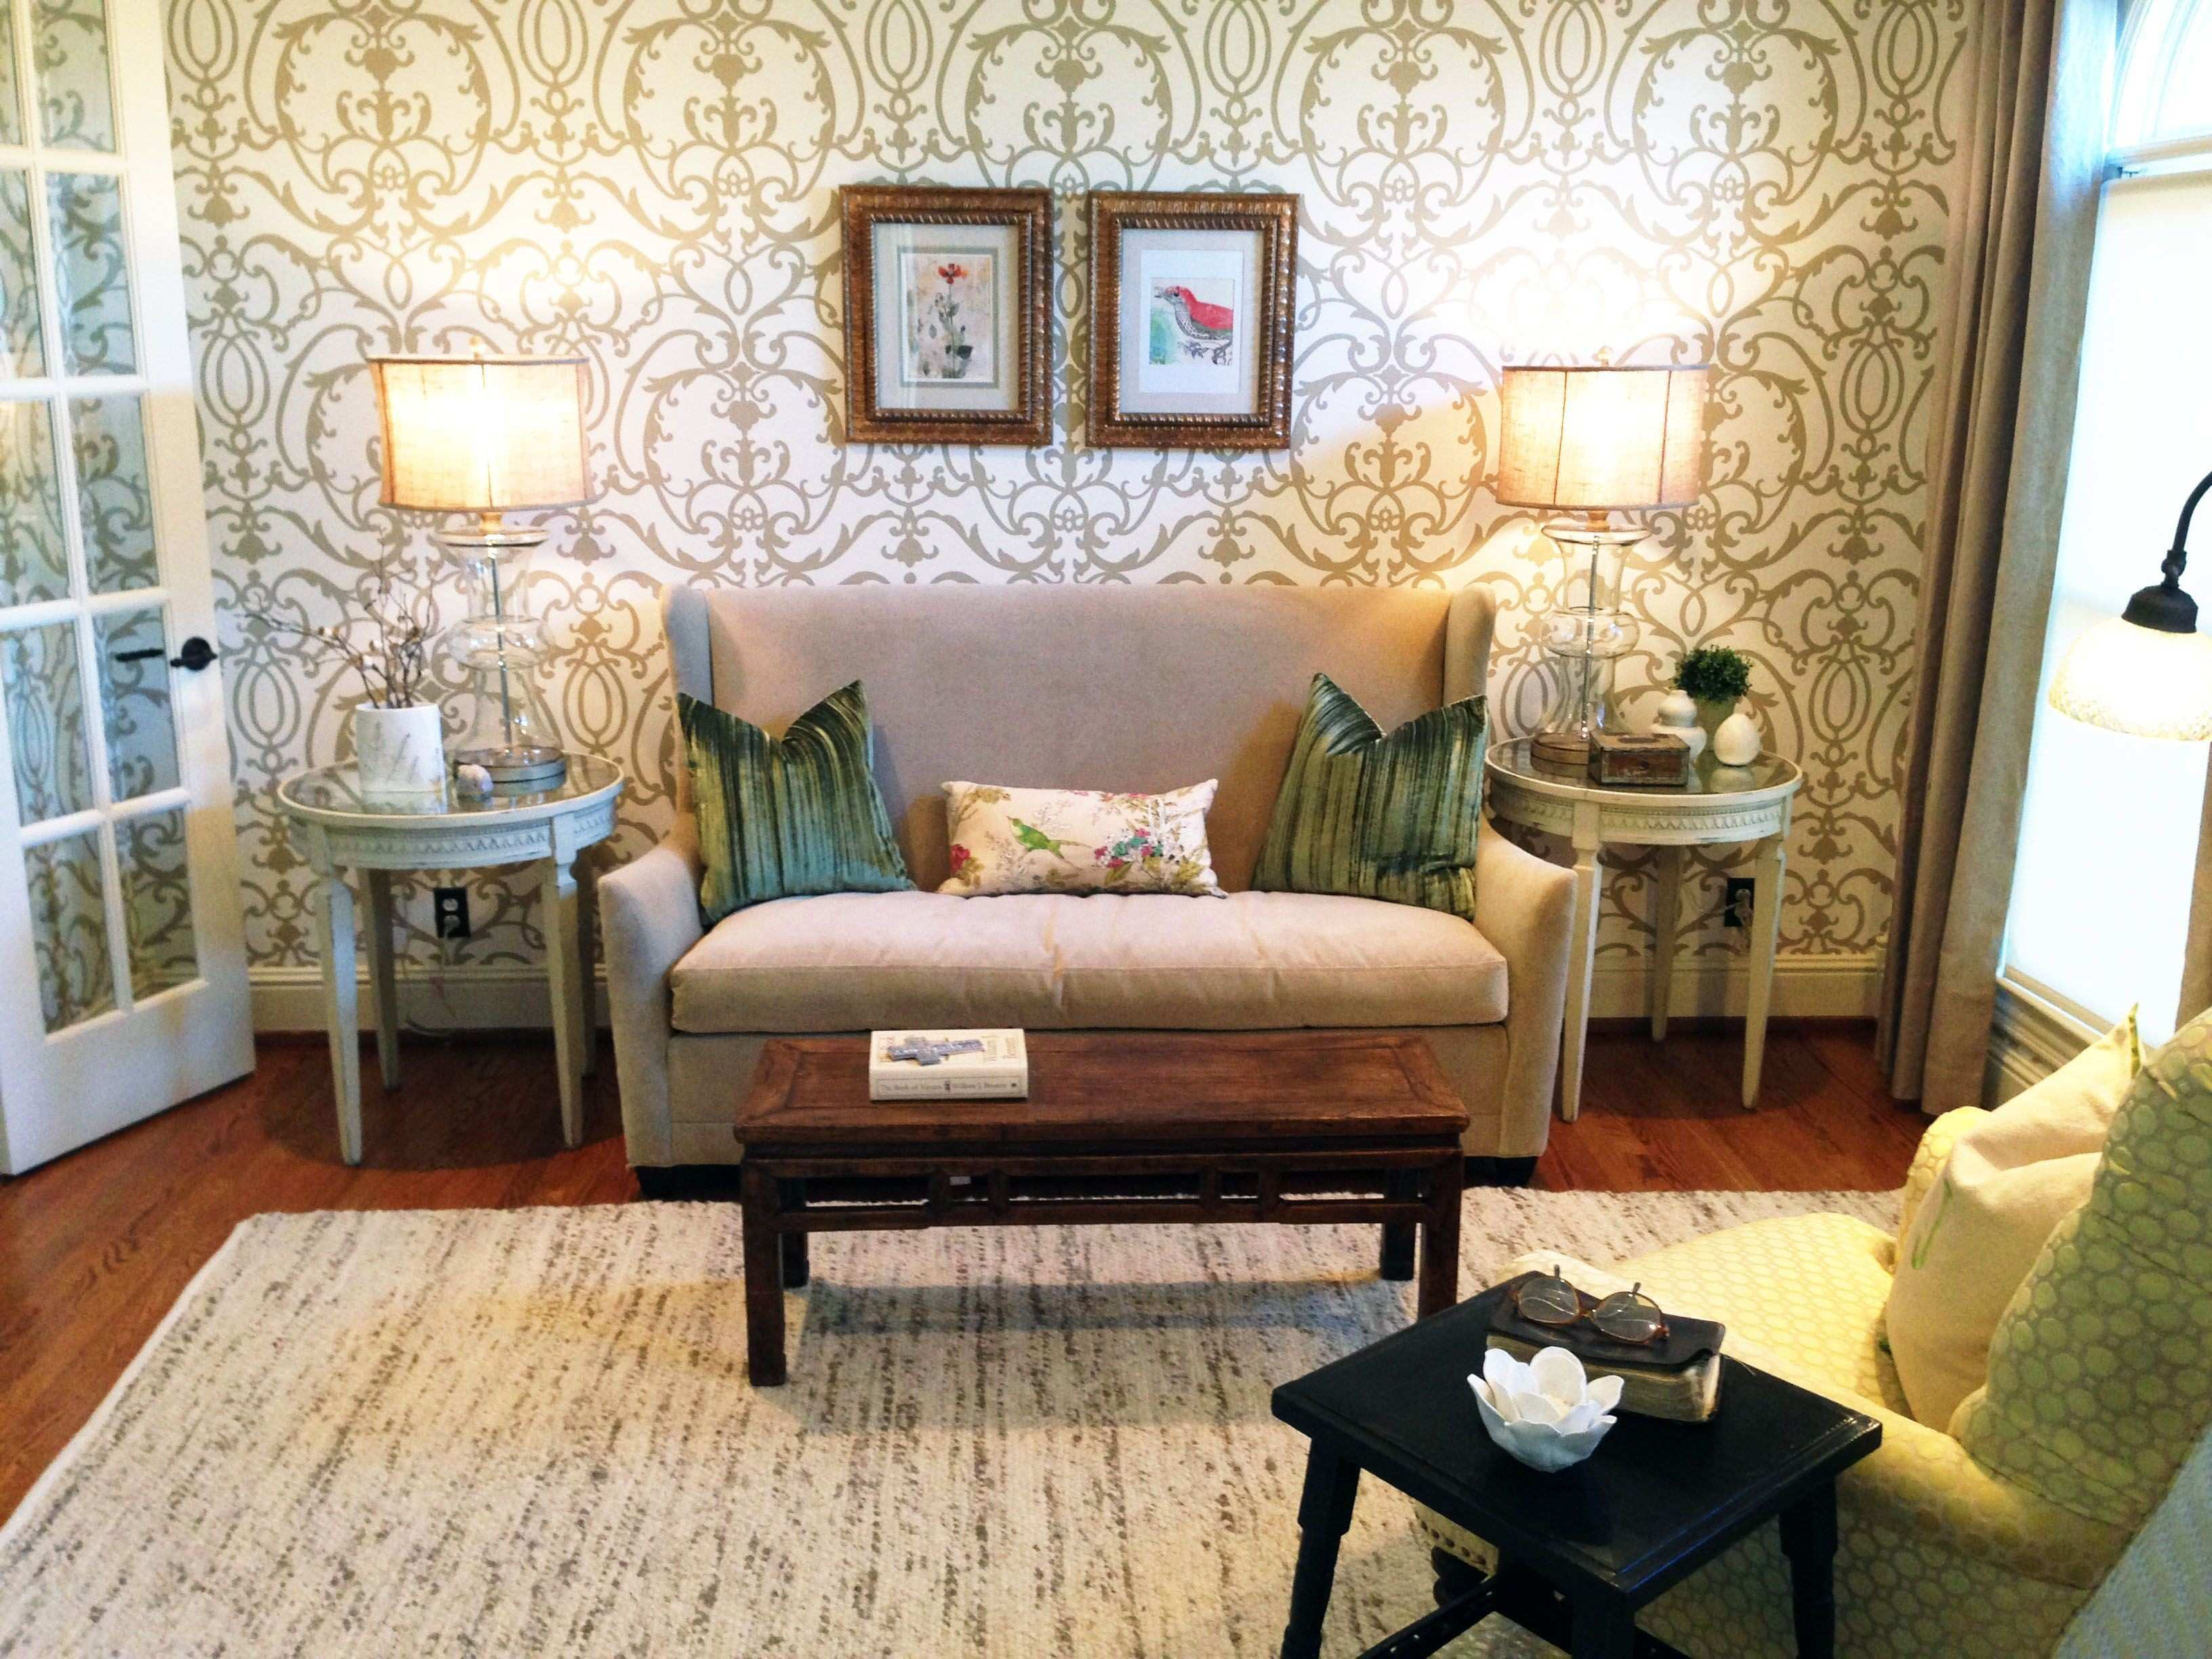 Small sitting room redesigned for client with large Albert Van Luit